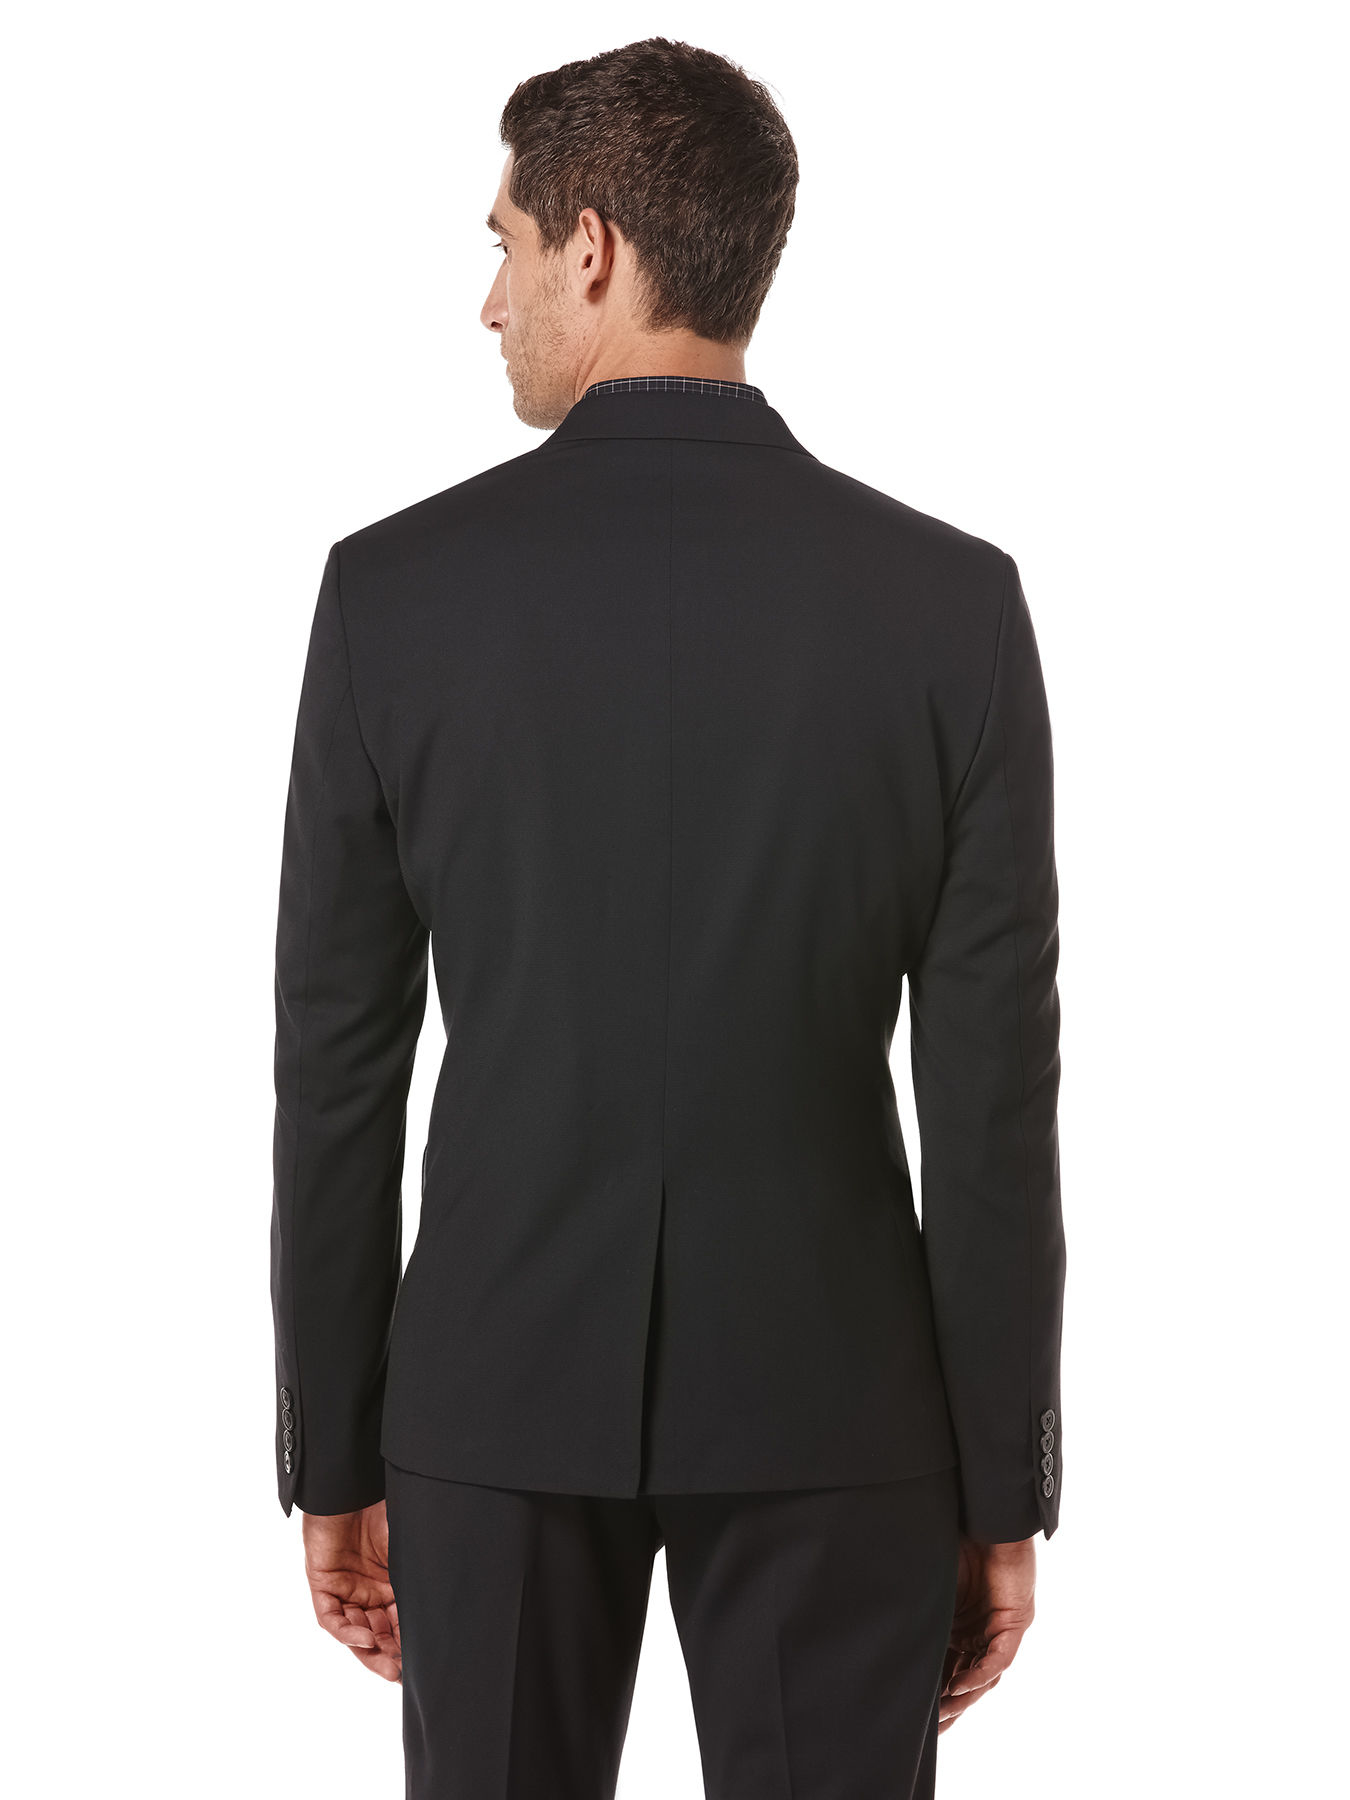 Washable mens suits products are most popular in North America, South America, and Mid East. You can ensure product safety by selecting from certified suppliers, including with ISO, 52 with Other, and 20 with ISO certification.